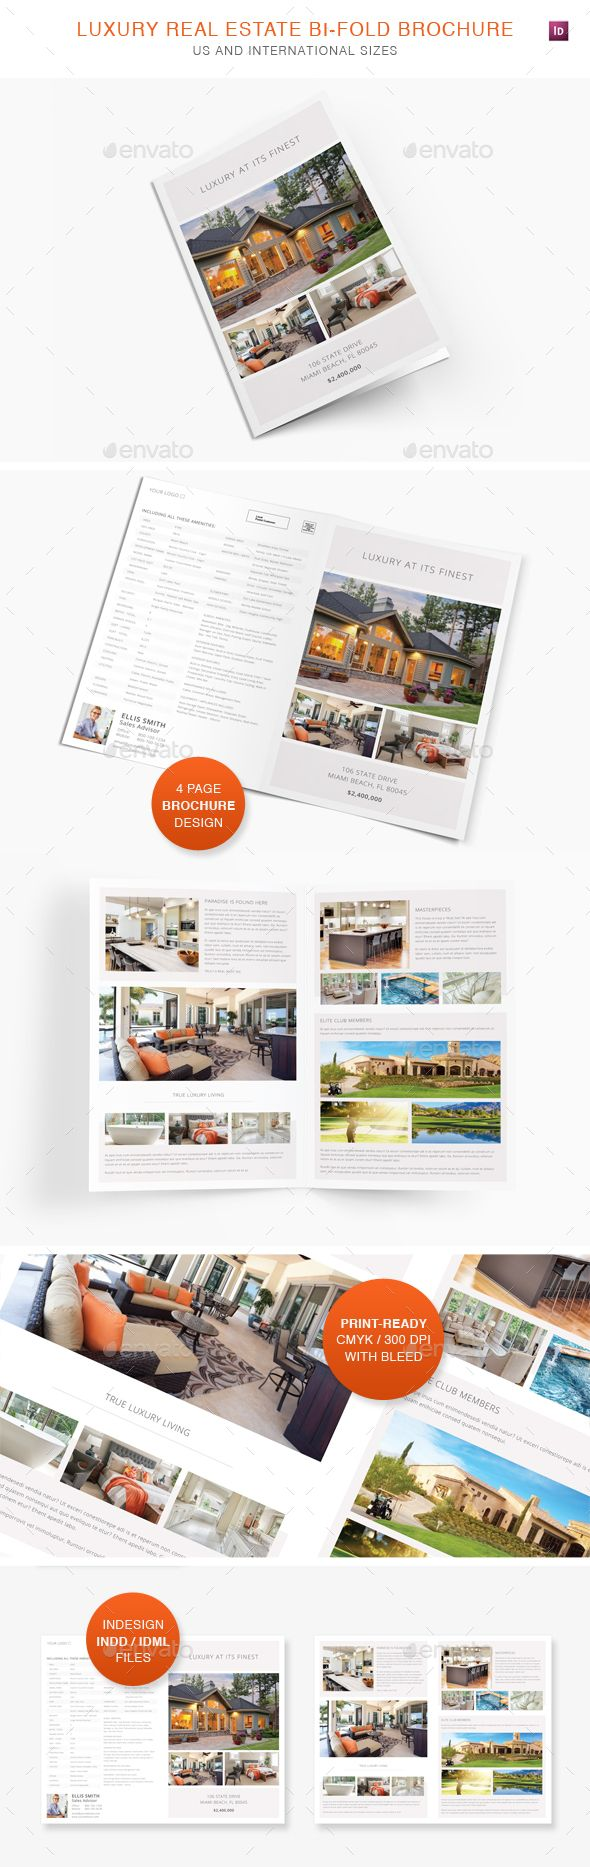 17 best ideas about Luxury Brochure on Pinterest | Portfolio ...